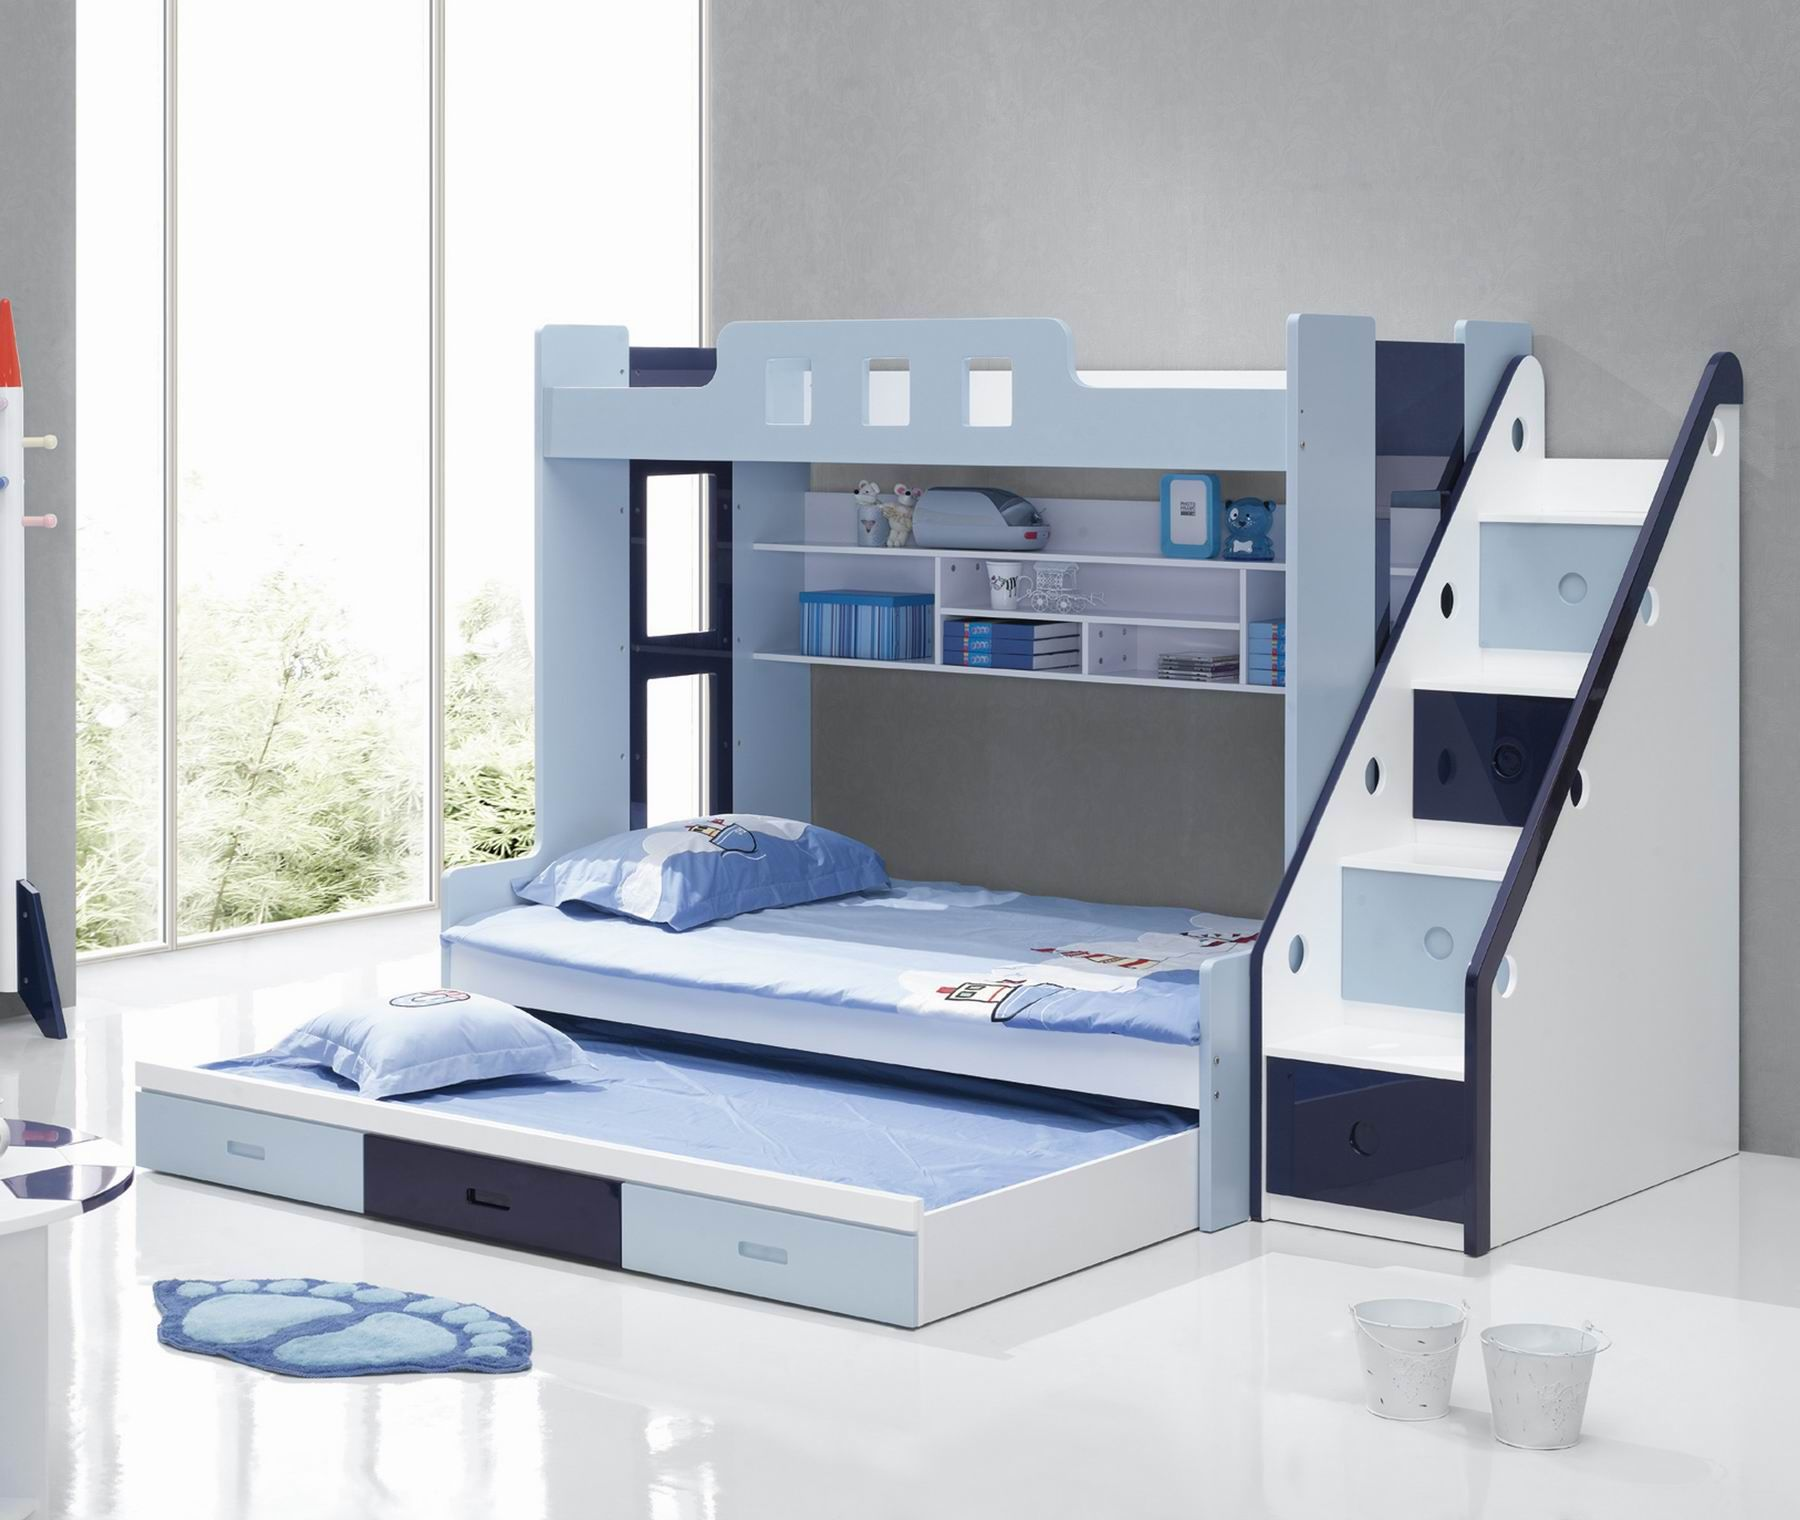 Marvelous Kid Bedroom Modern Design Bunk Beds For Kids Bunk Bed . Amazing Pictures